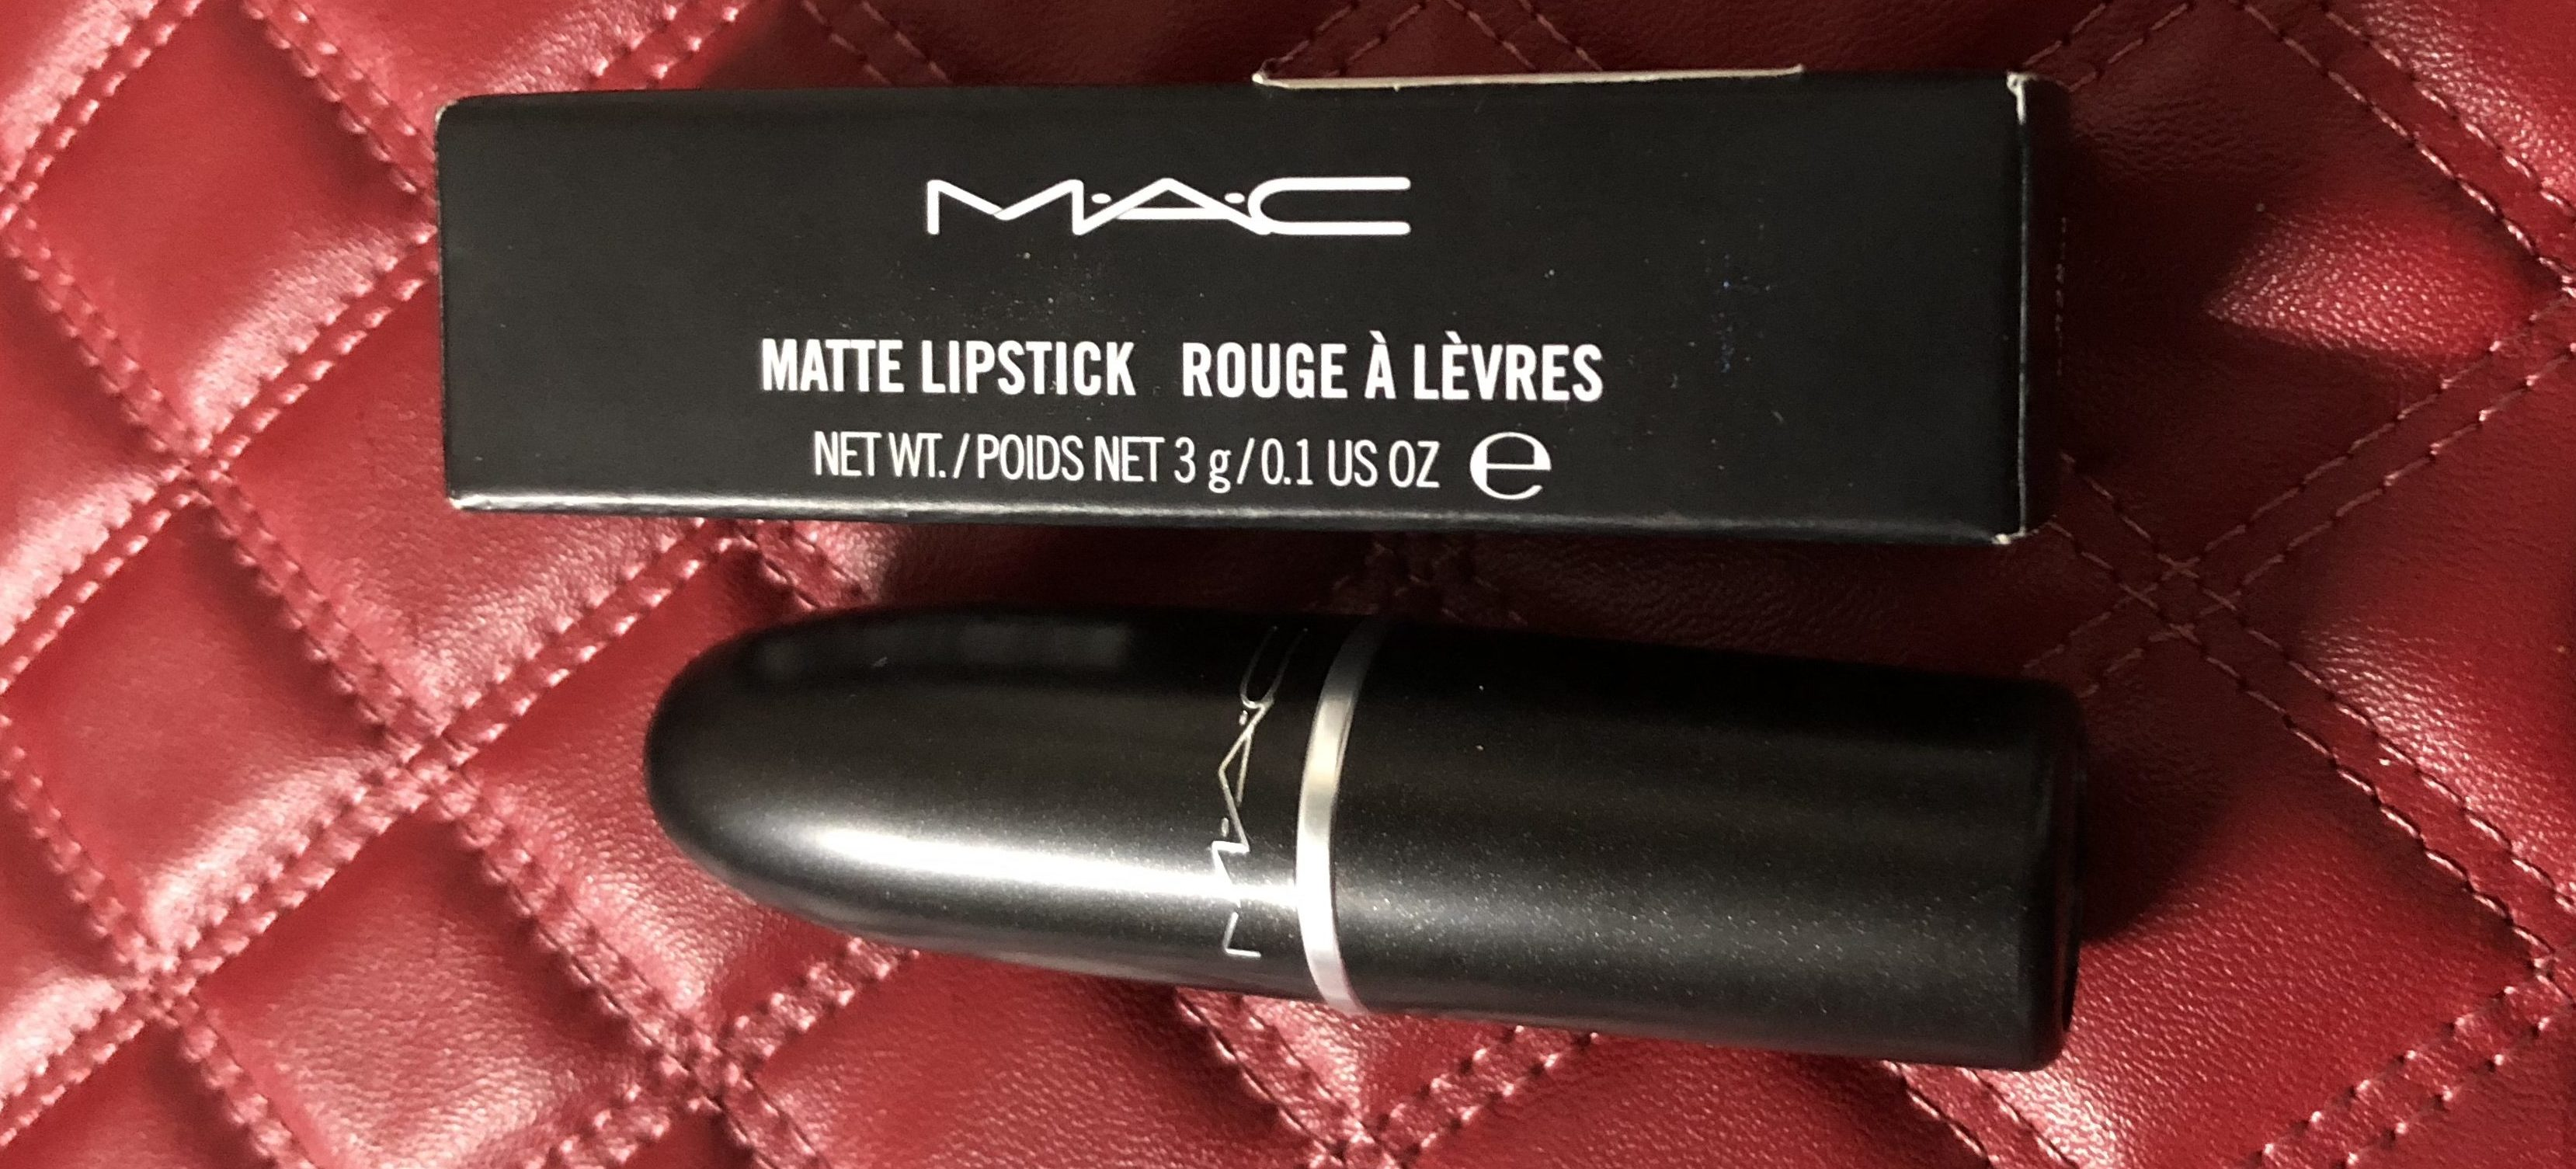 MAC Matte Lipstick Russian Red Cover Image